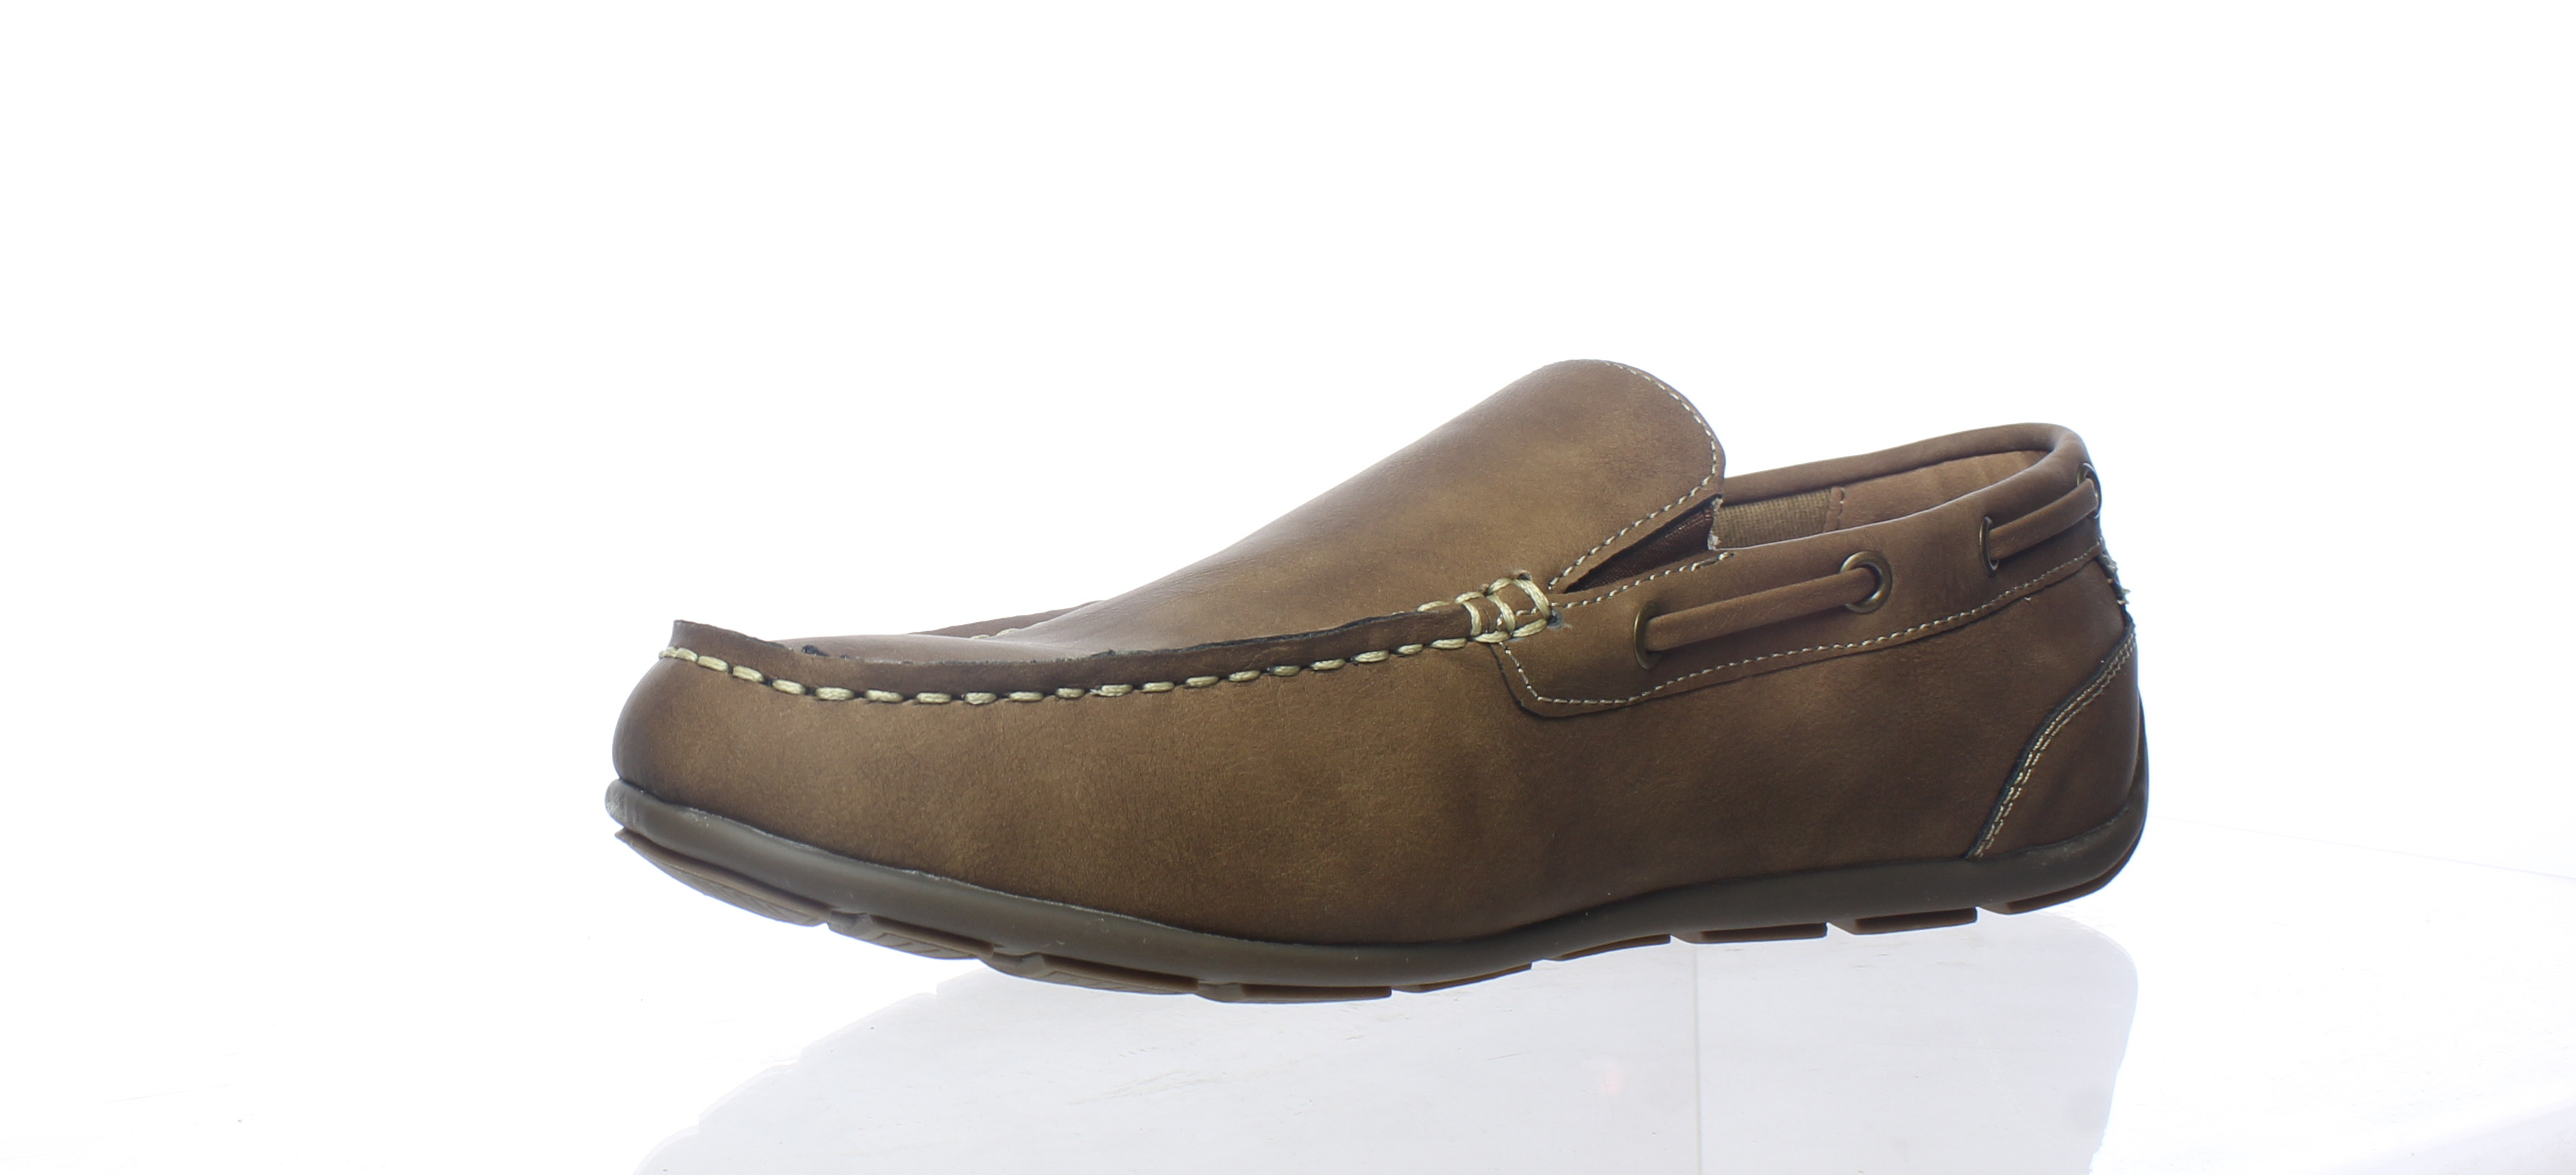 GBX-Mens-Ludlam-Casual-Moc-Toe-Slip-On-Boat-Shoe-Driving-Loafers thumbnail 15